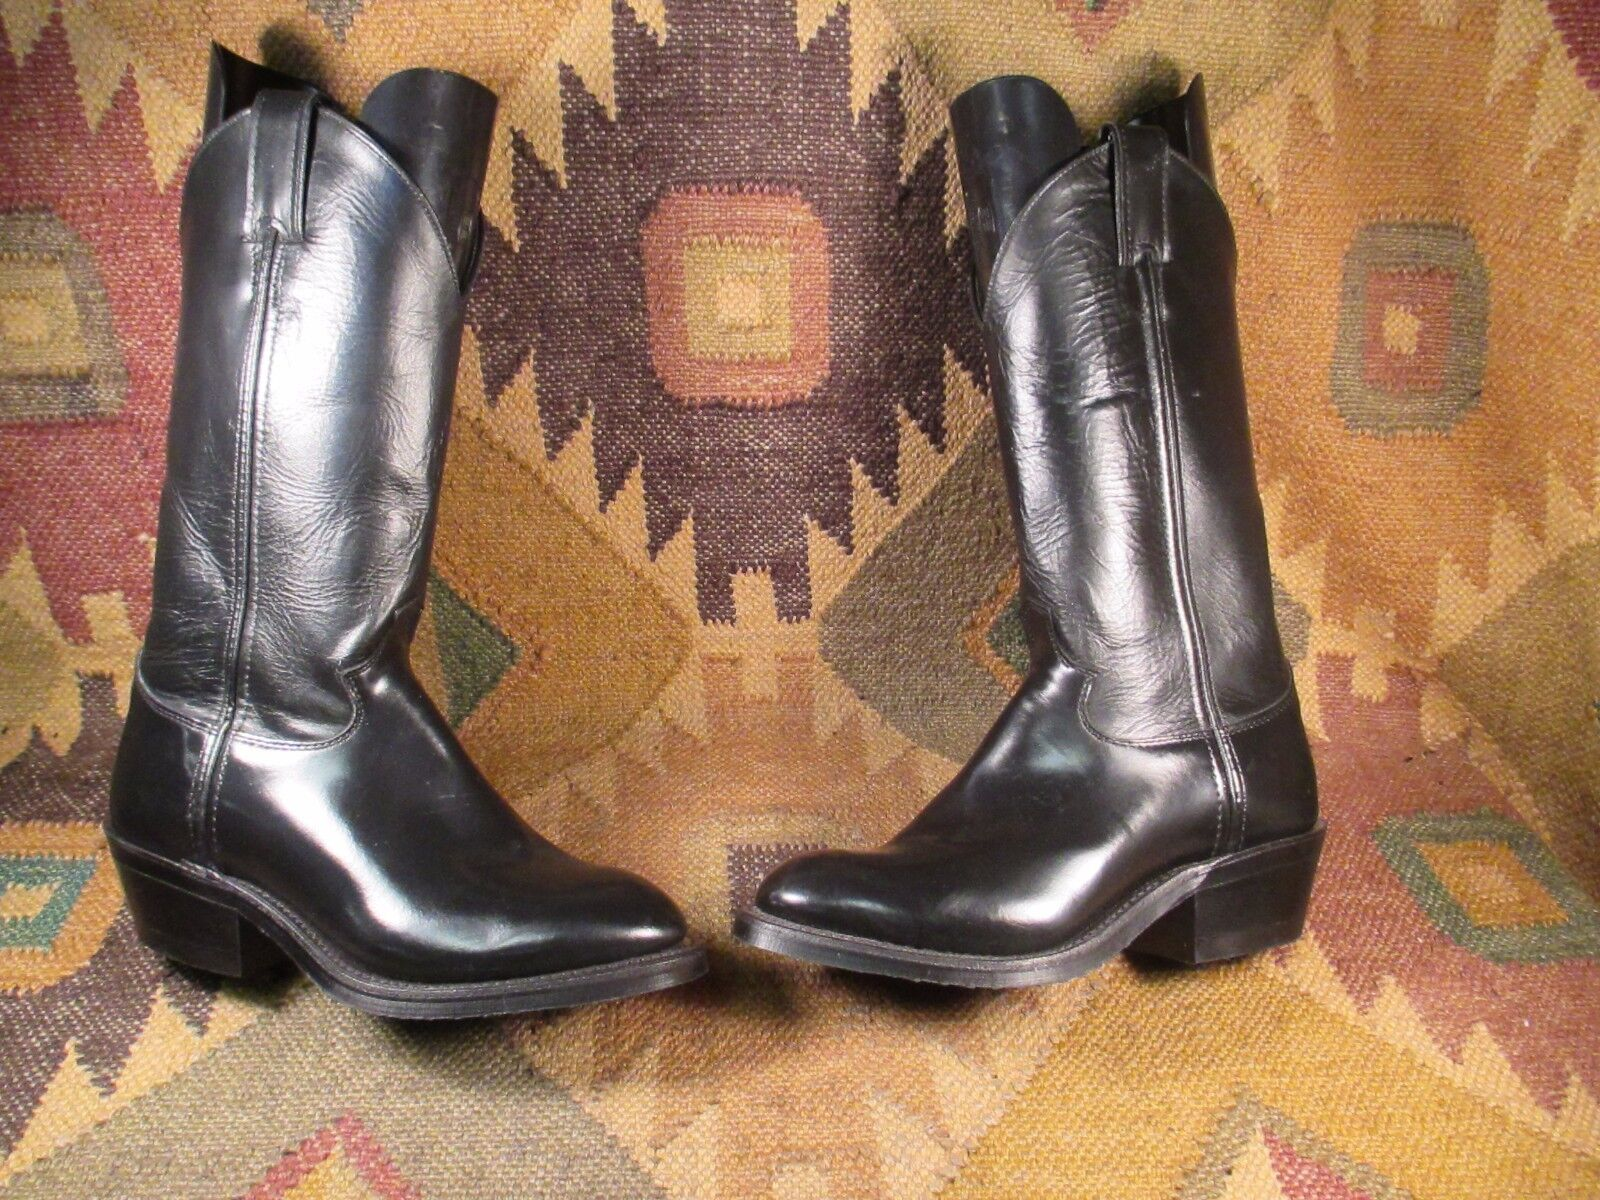 VTG NEW Justin Melo-Veal Western Boots Black style M6637 SIZE 6.5C USA made